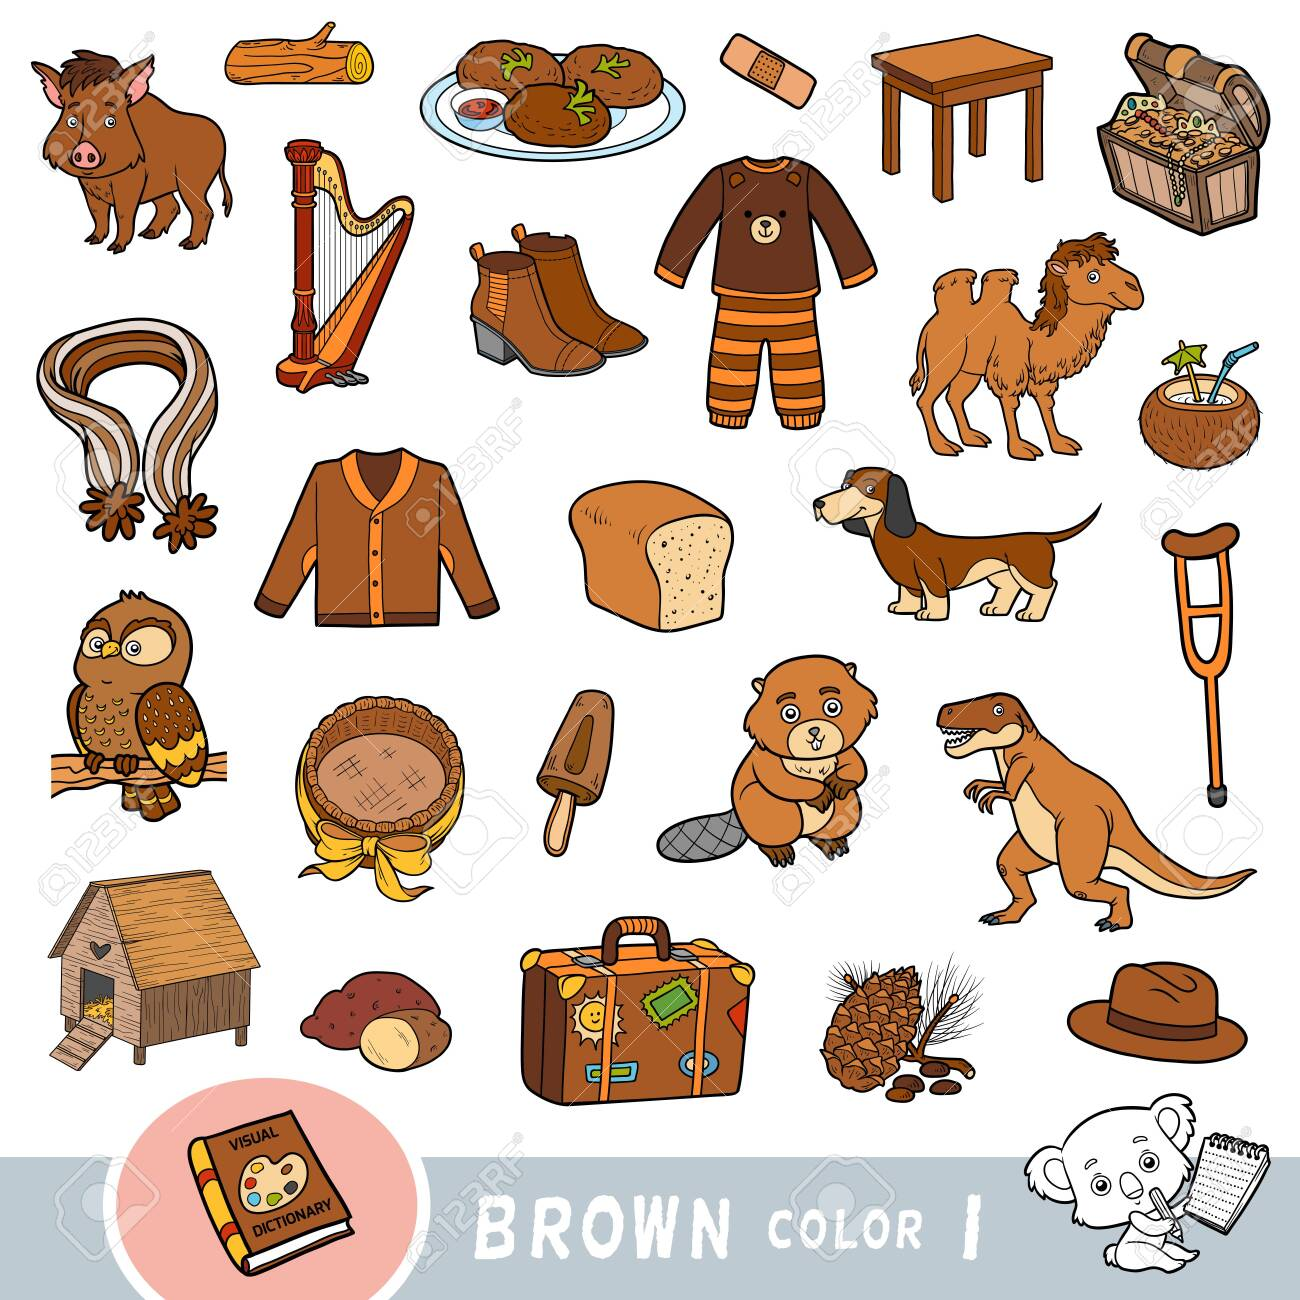 Colorful set of brown color objects. Visual dictionary for children about the basic colors. Cartoon images to learning in kindergarten and preschool - 136781450